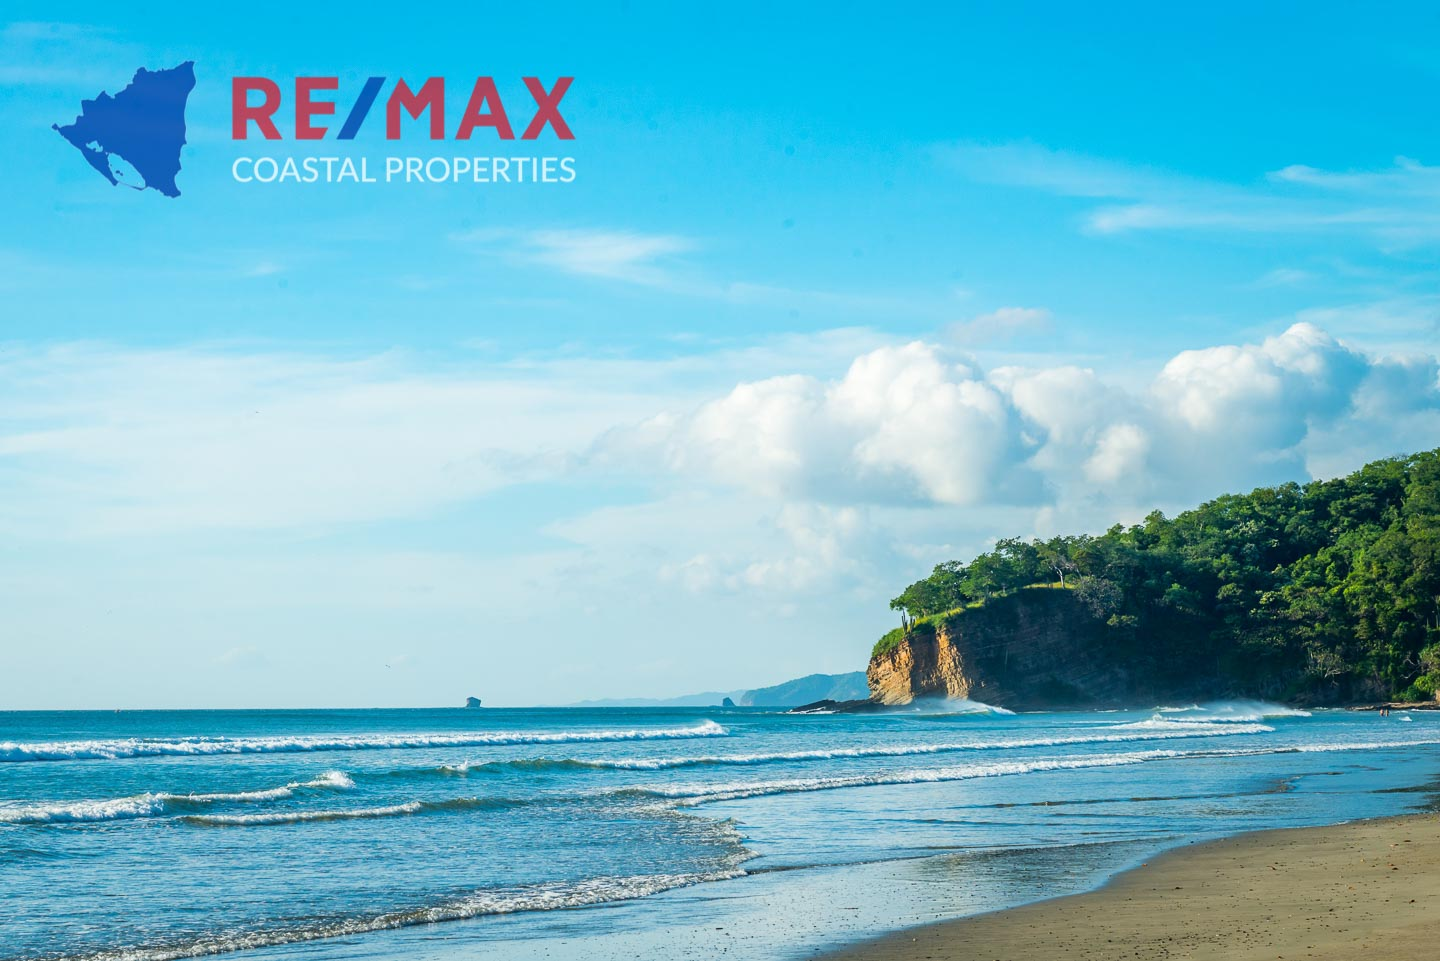 https://property-nicaragua.com/pedrodev/wp-content/uploads/2012/06/Playa-Coco-Townhome-2-REMAX-Coastal-Properties-43.jpg